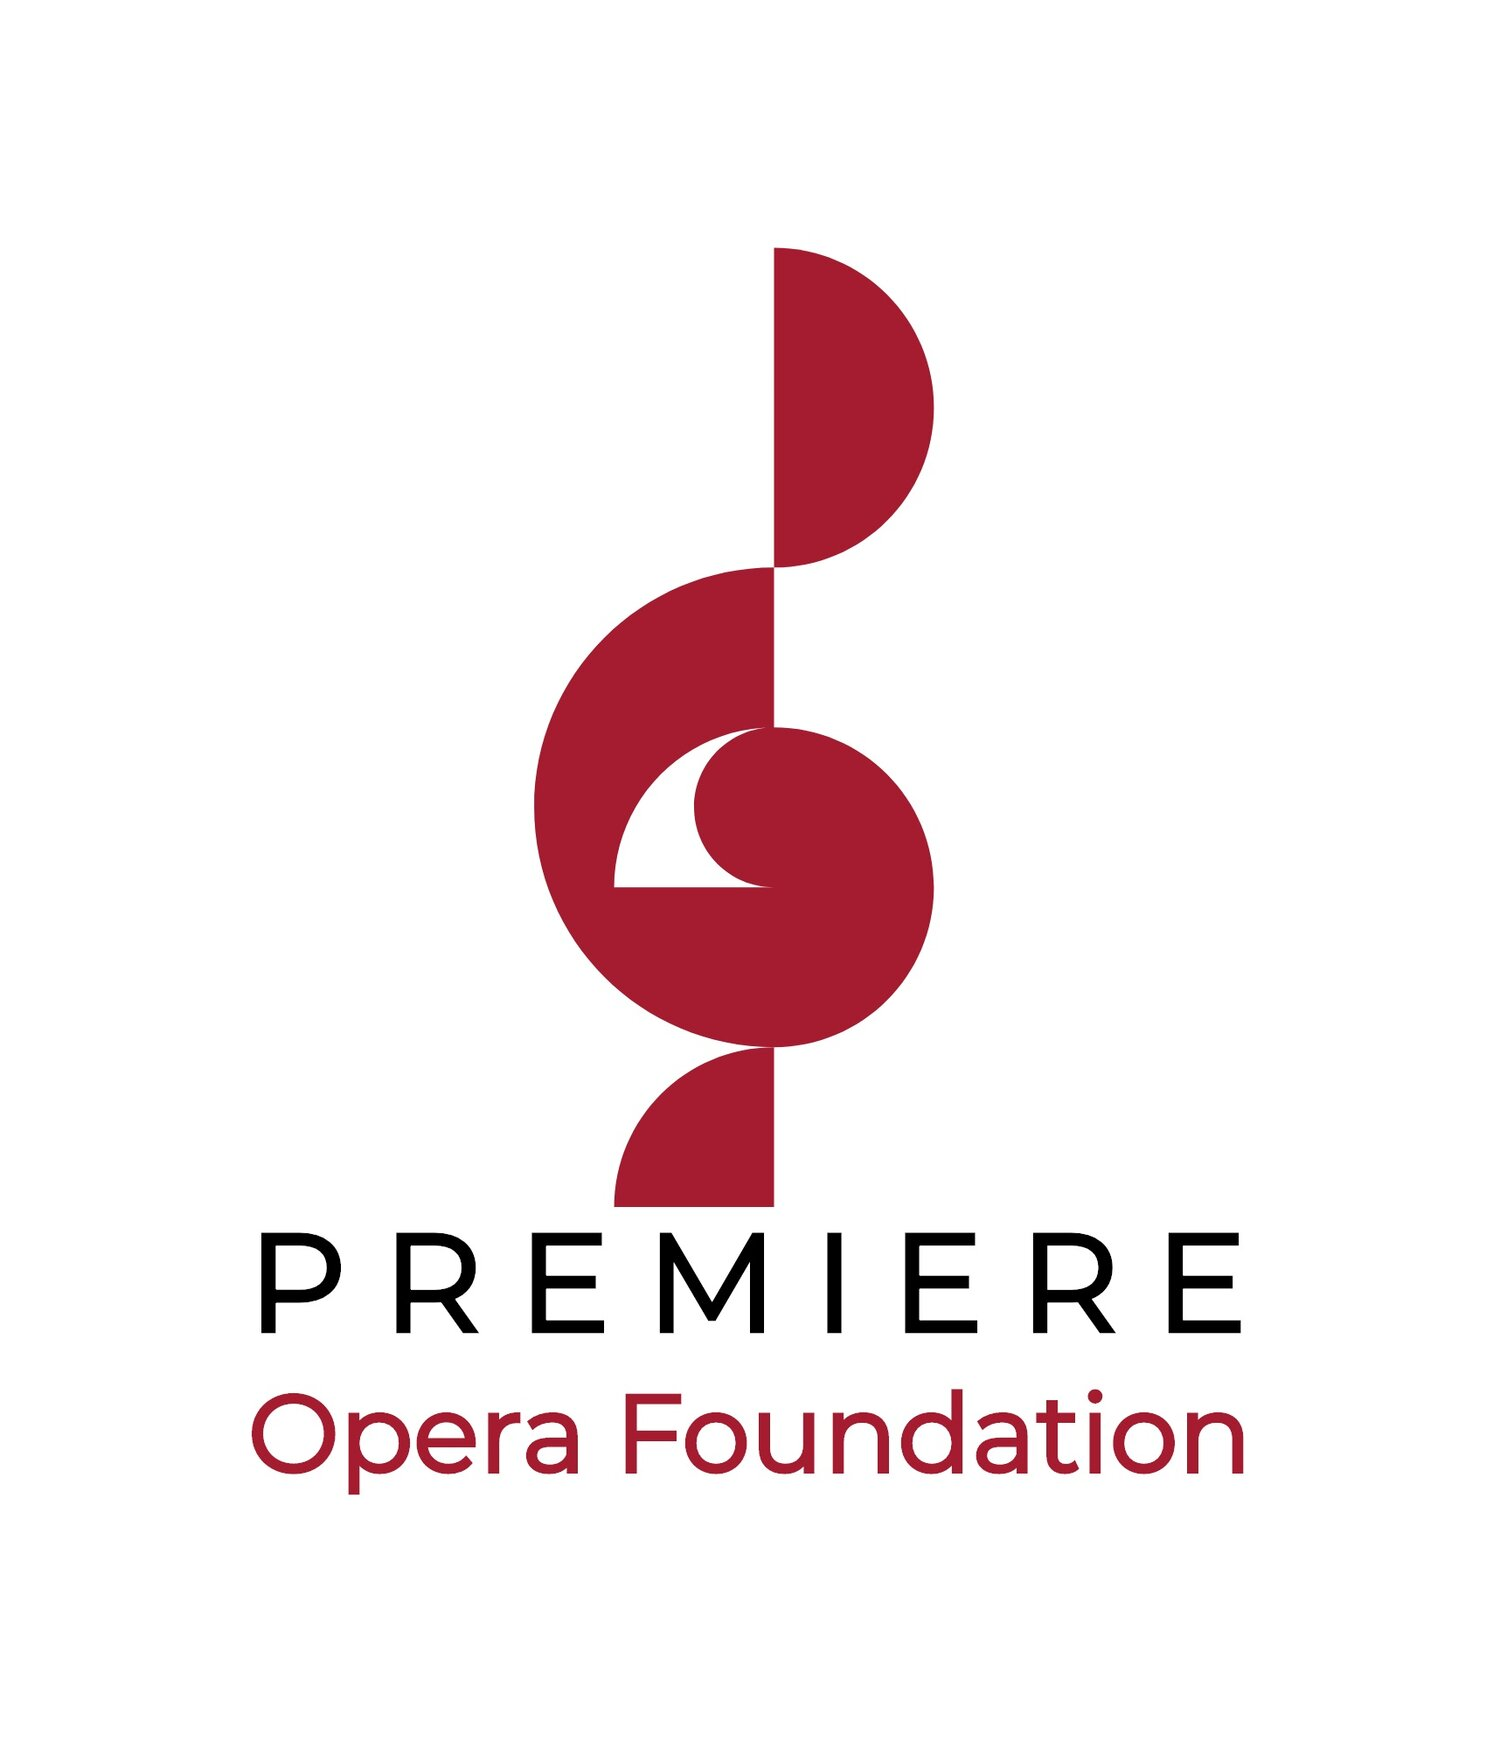 Premiere Opera Foundation